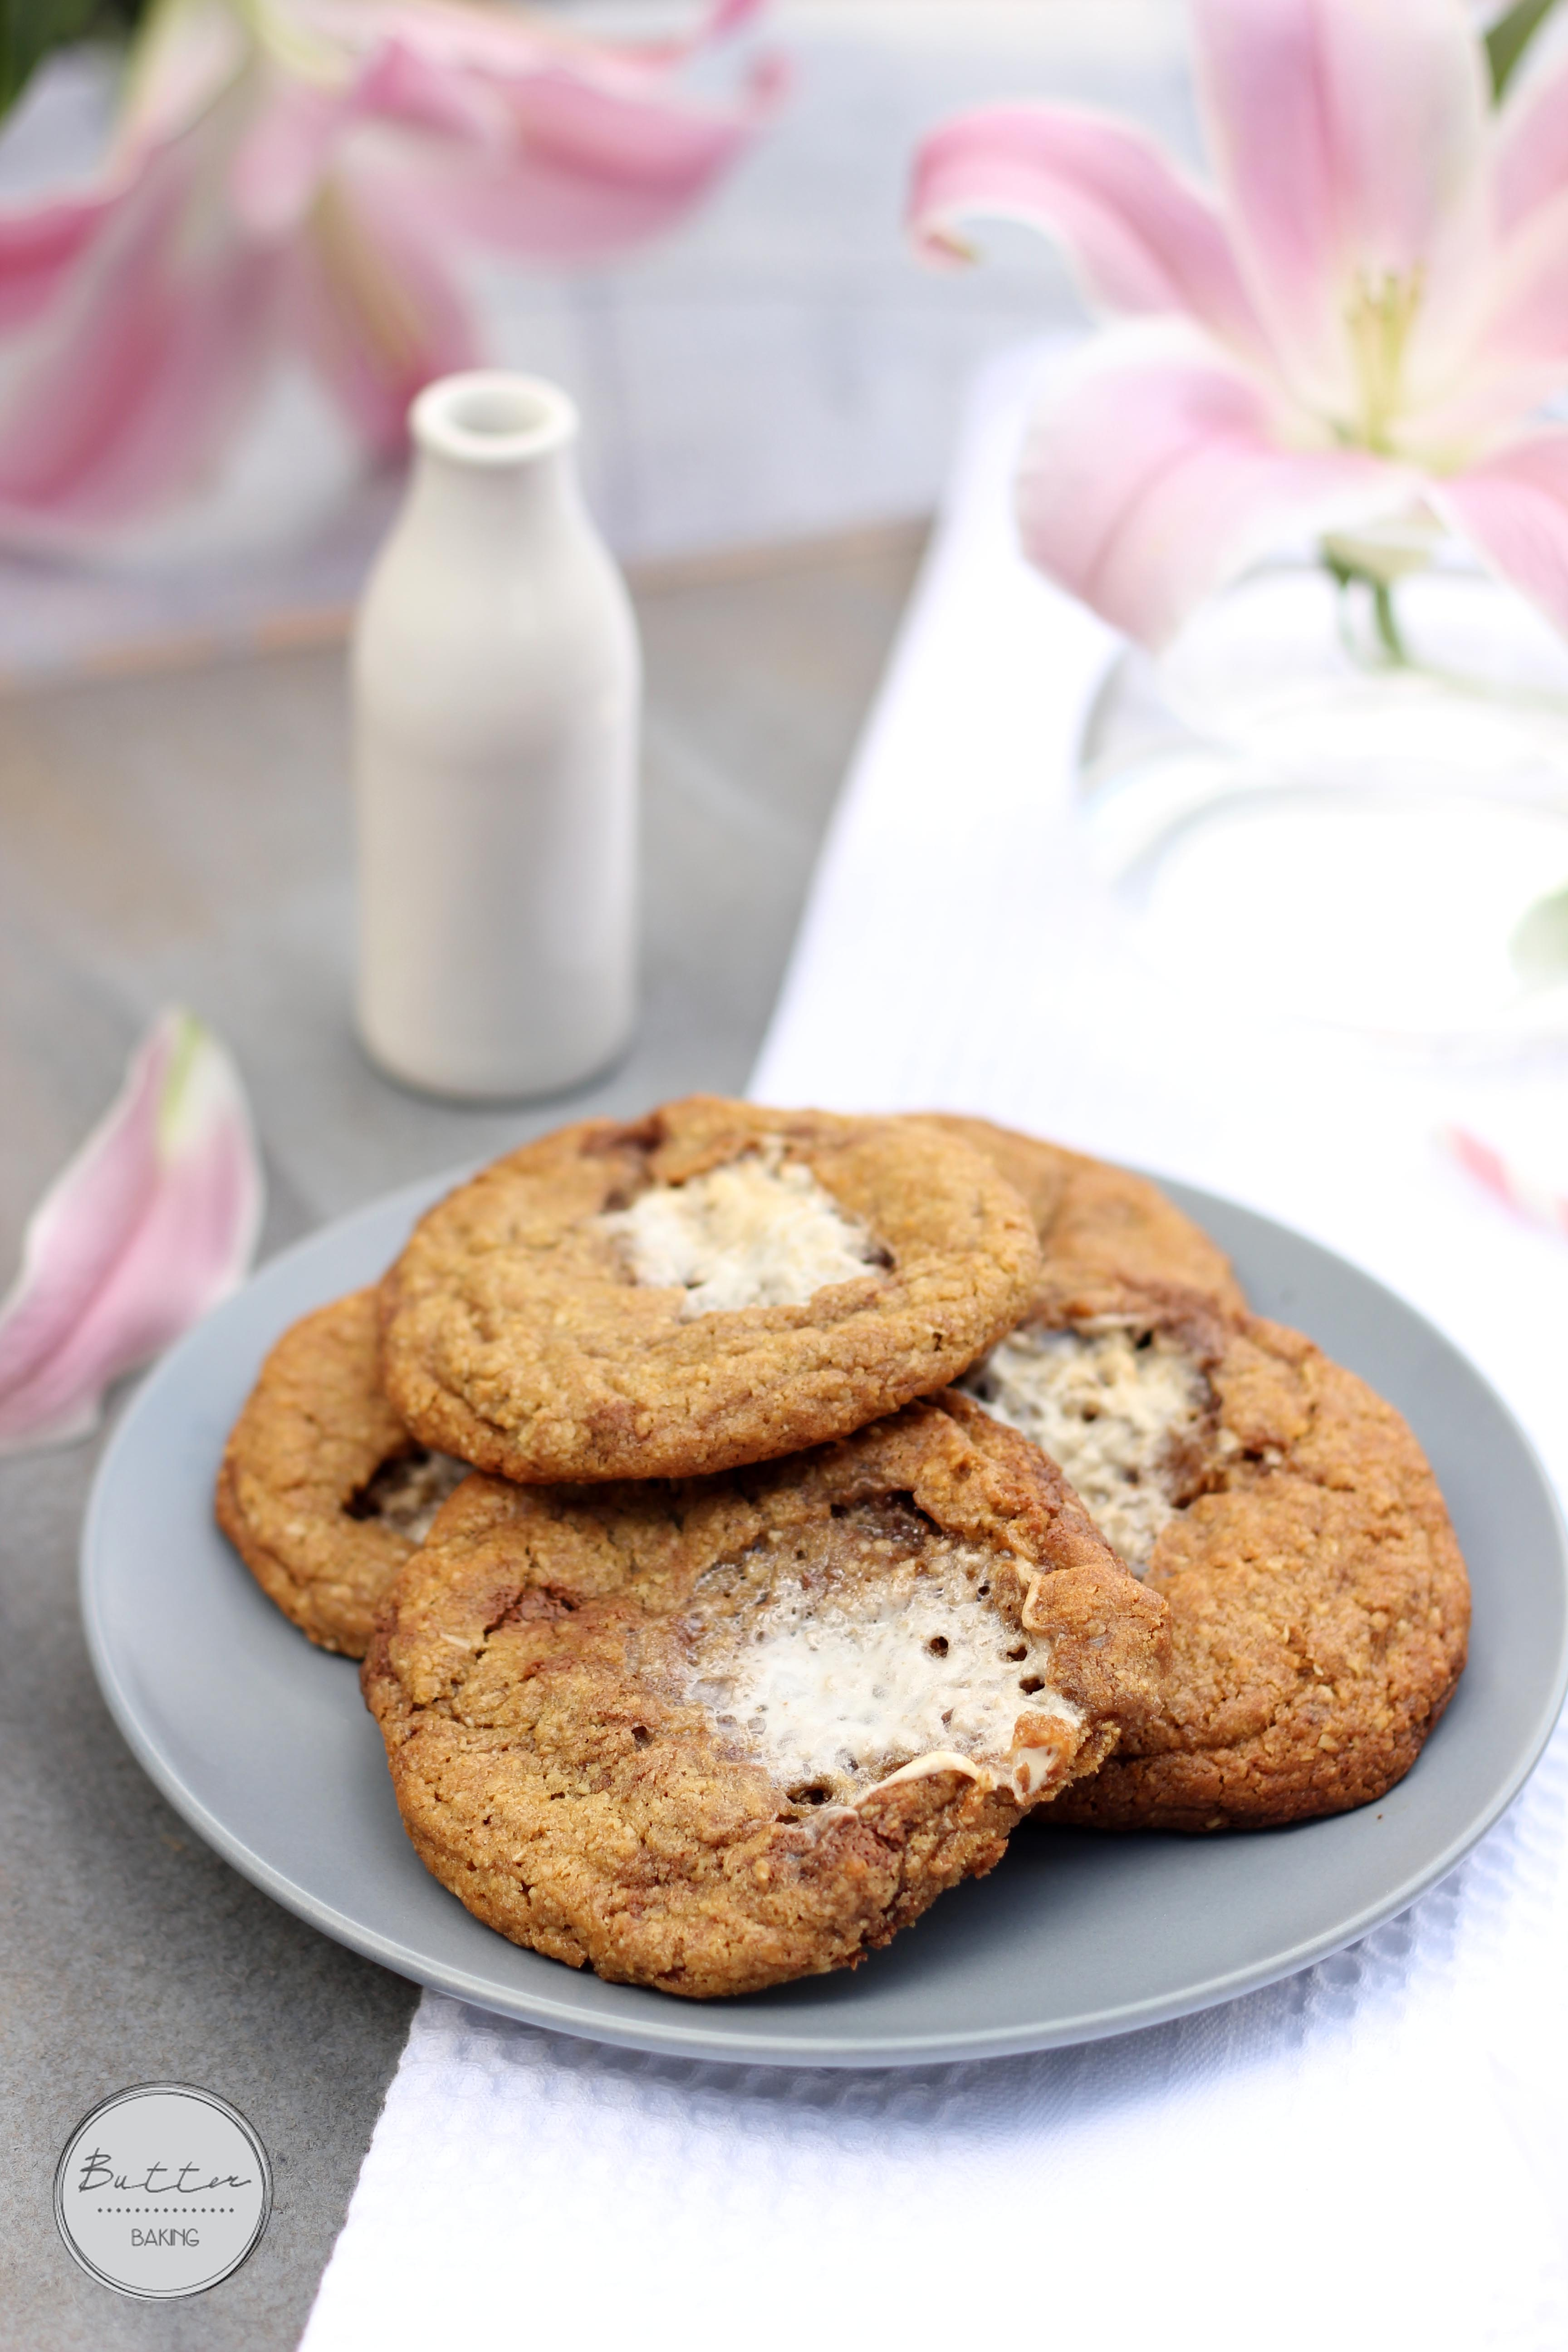 Marshmallow stuffed chocolate truffle chunk cookies | Butter Baking